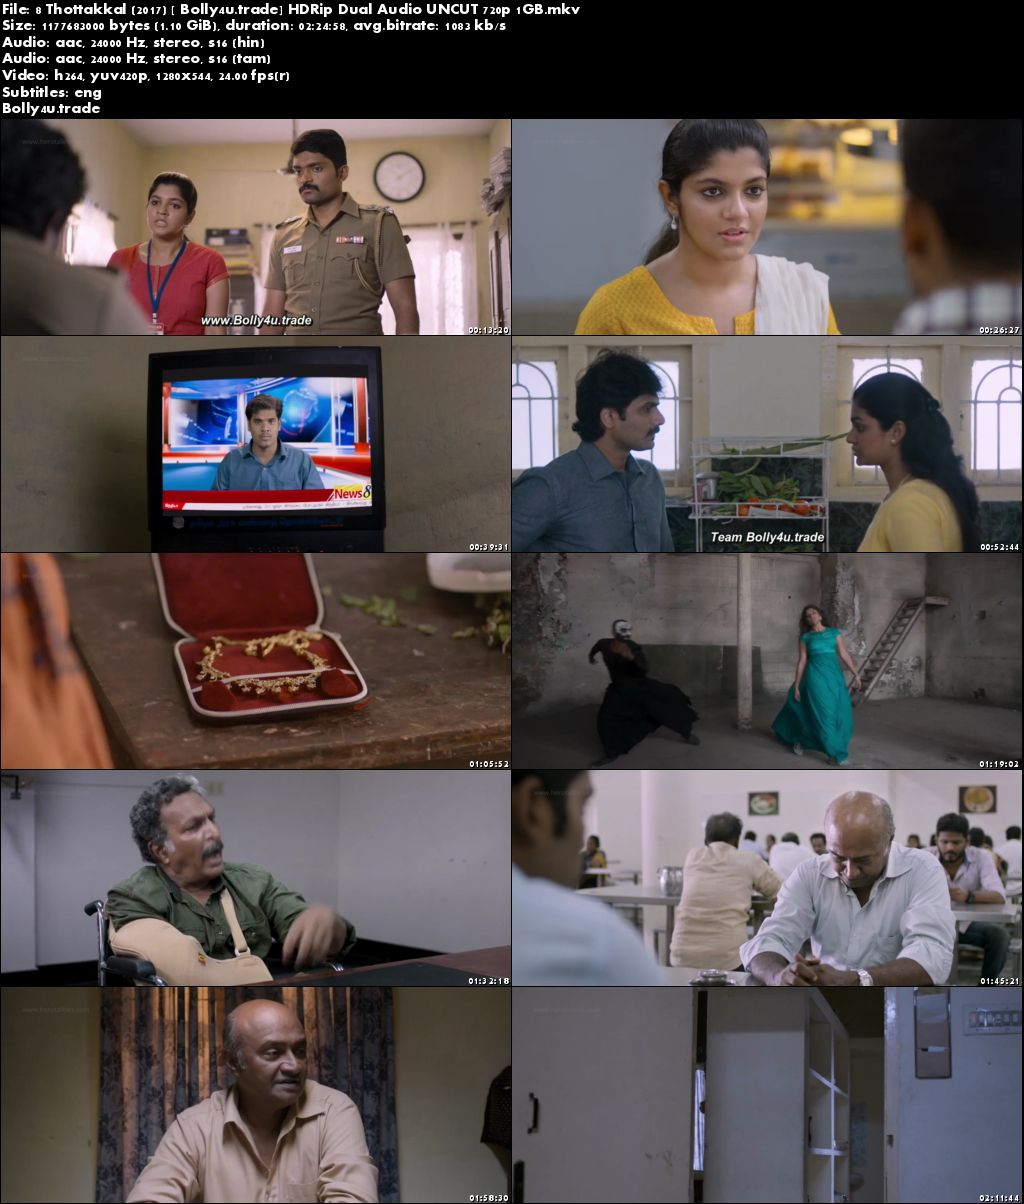 8 Thottakkal 2017 HDRip 450MB UNCUT Hindi Dual Audio 480p Download